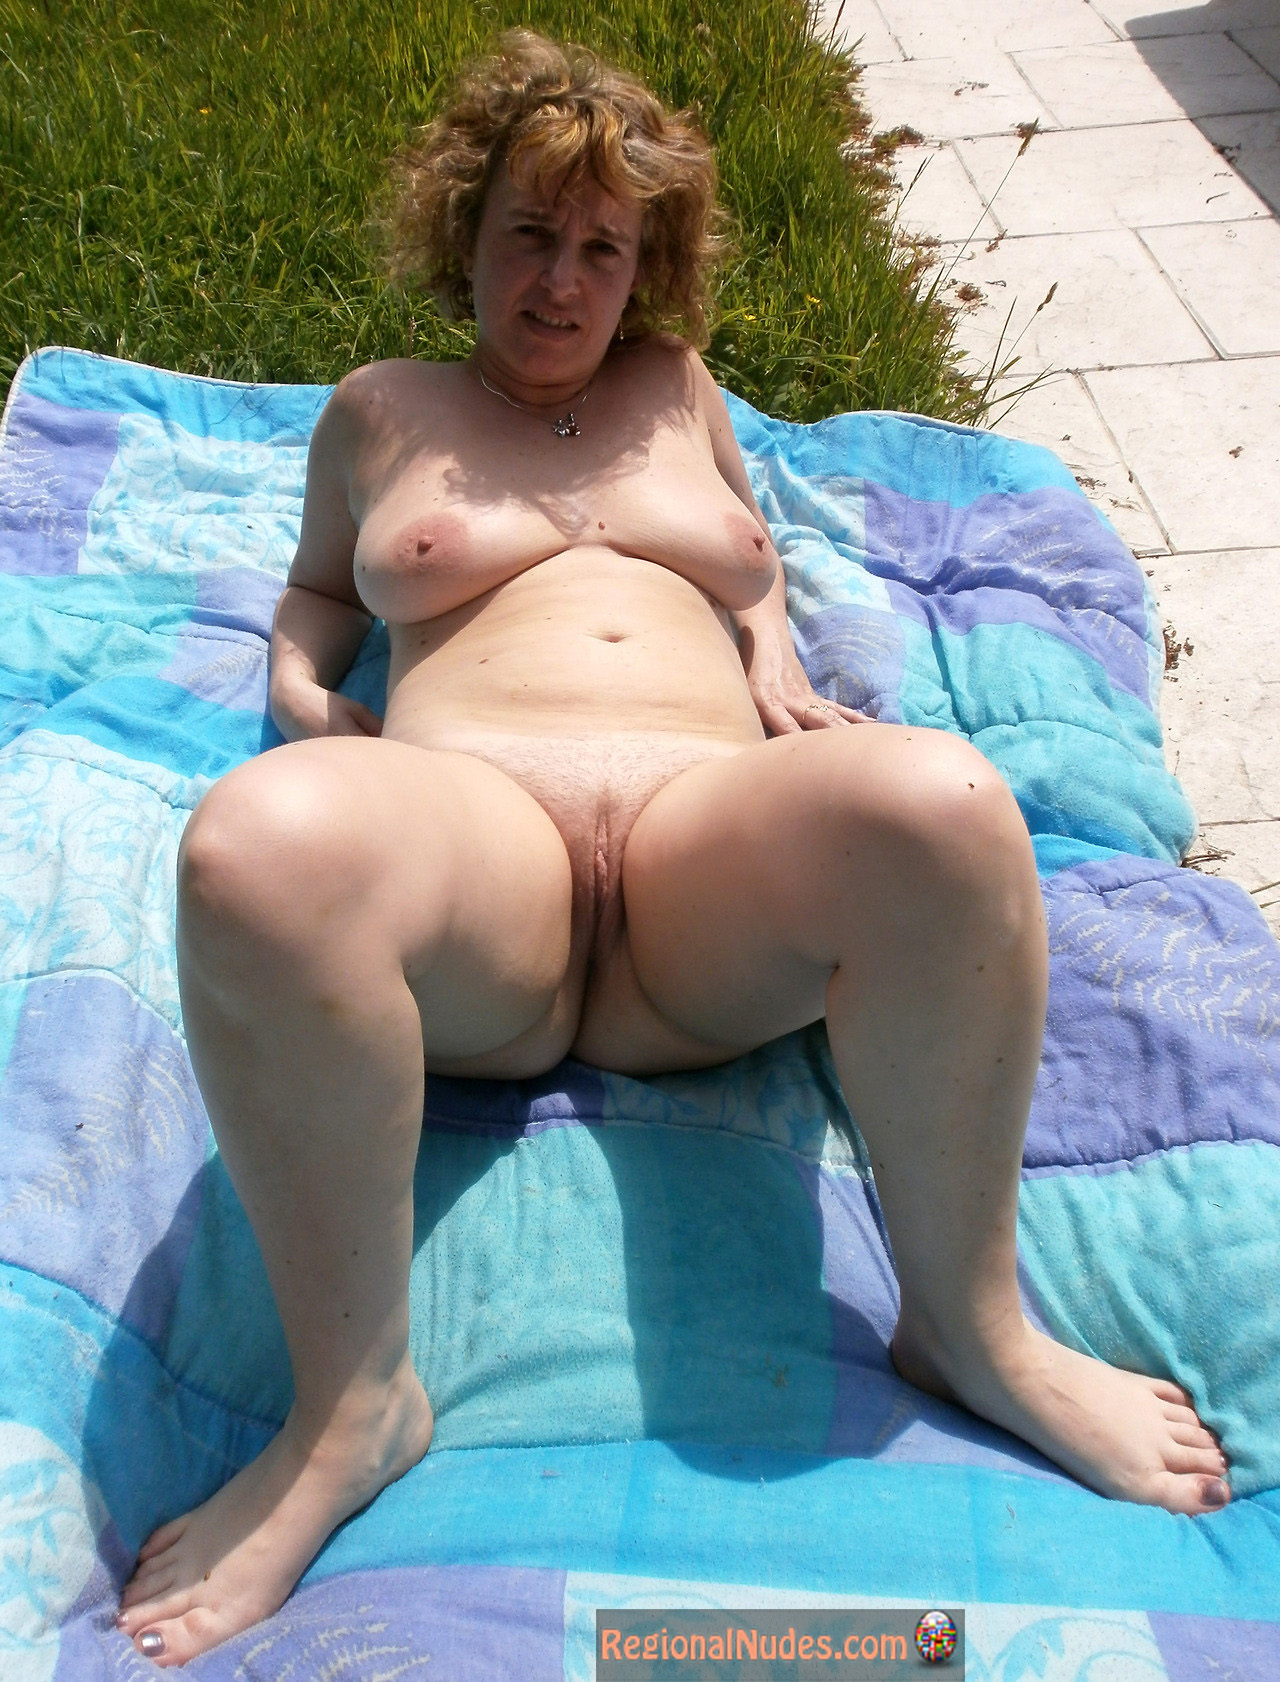 Milf interracial chubby mature